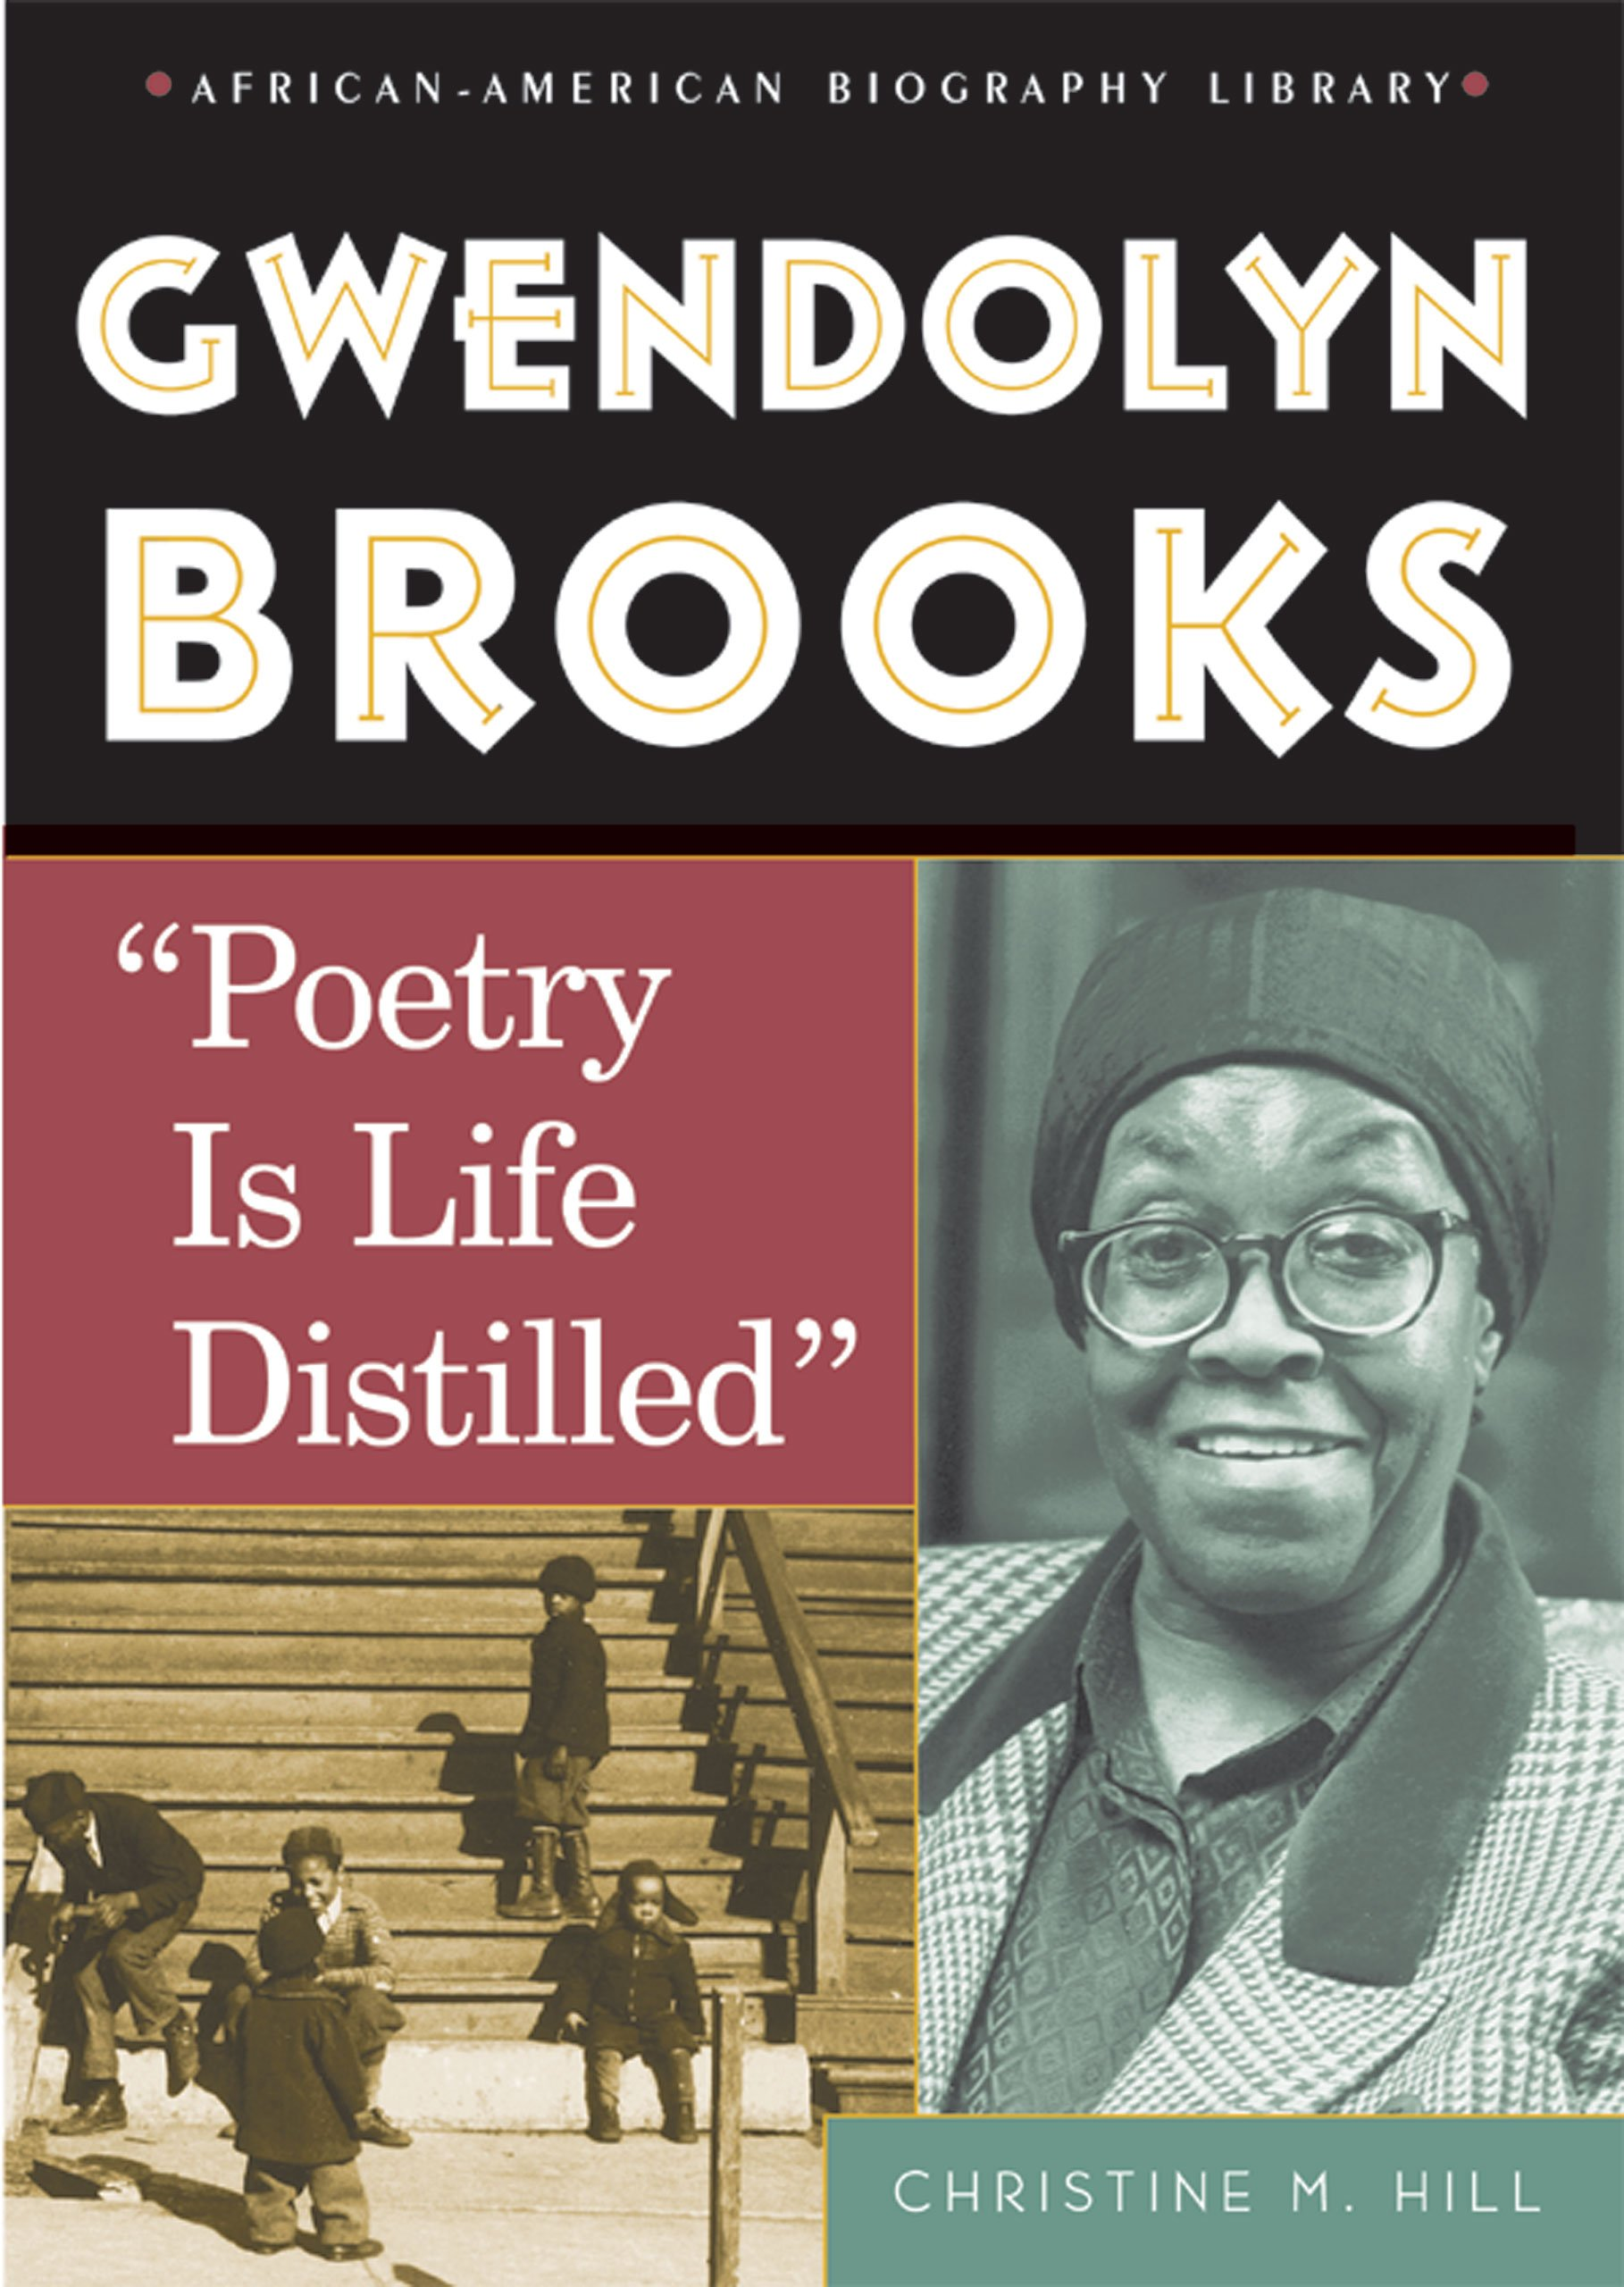 """Gwendolyn Brooks: """"Poetry Is Life Distilled"""" (African-American Biography Library) PDF"""